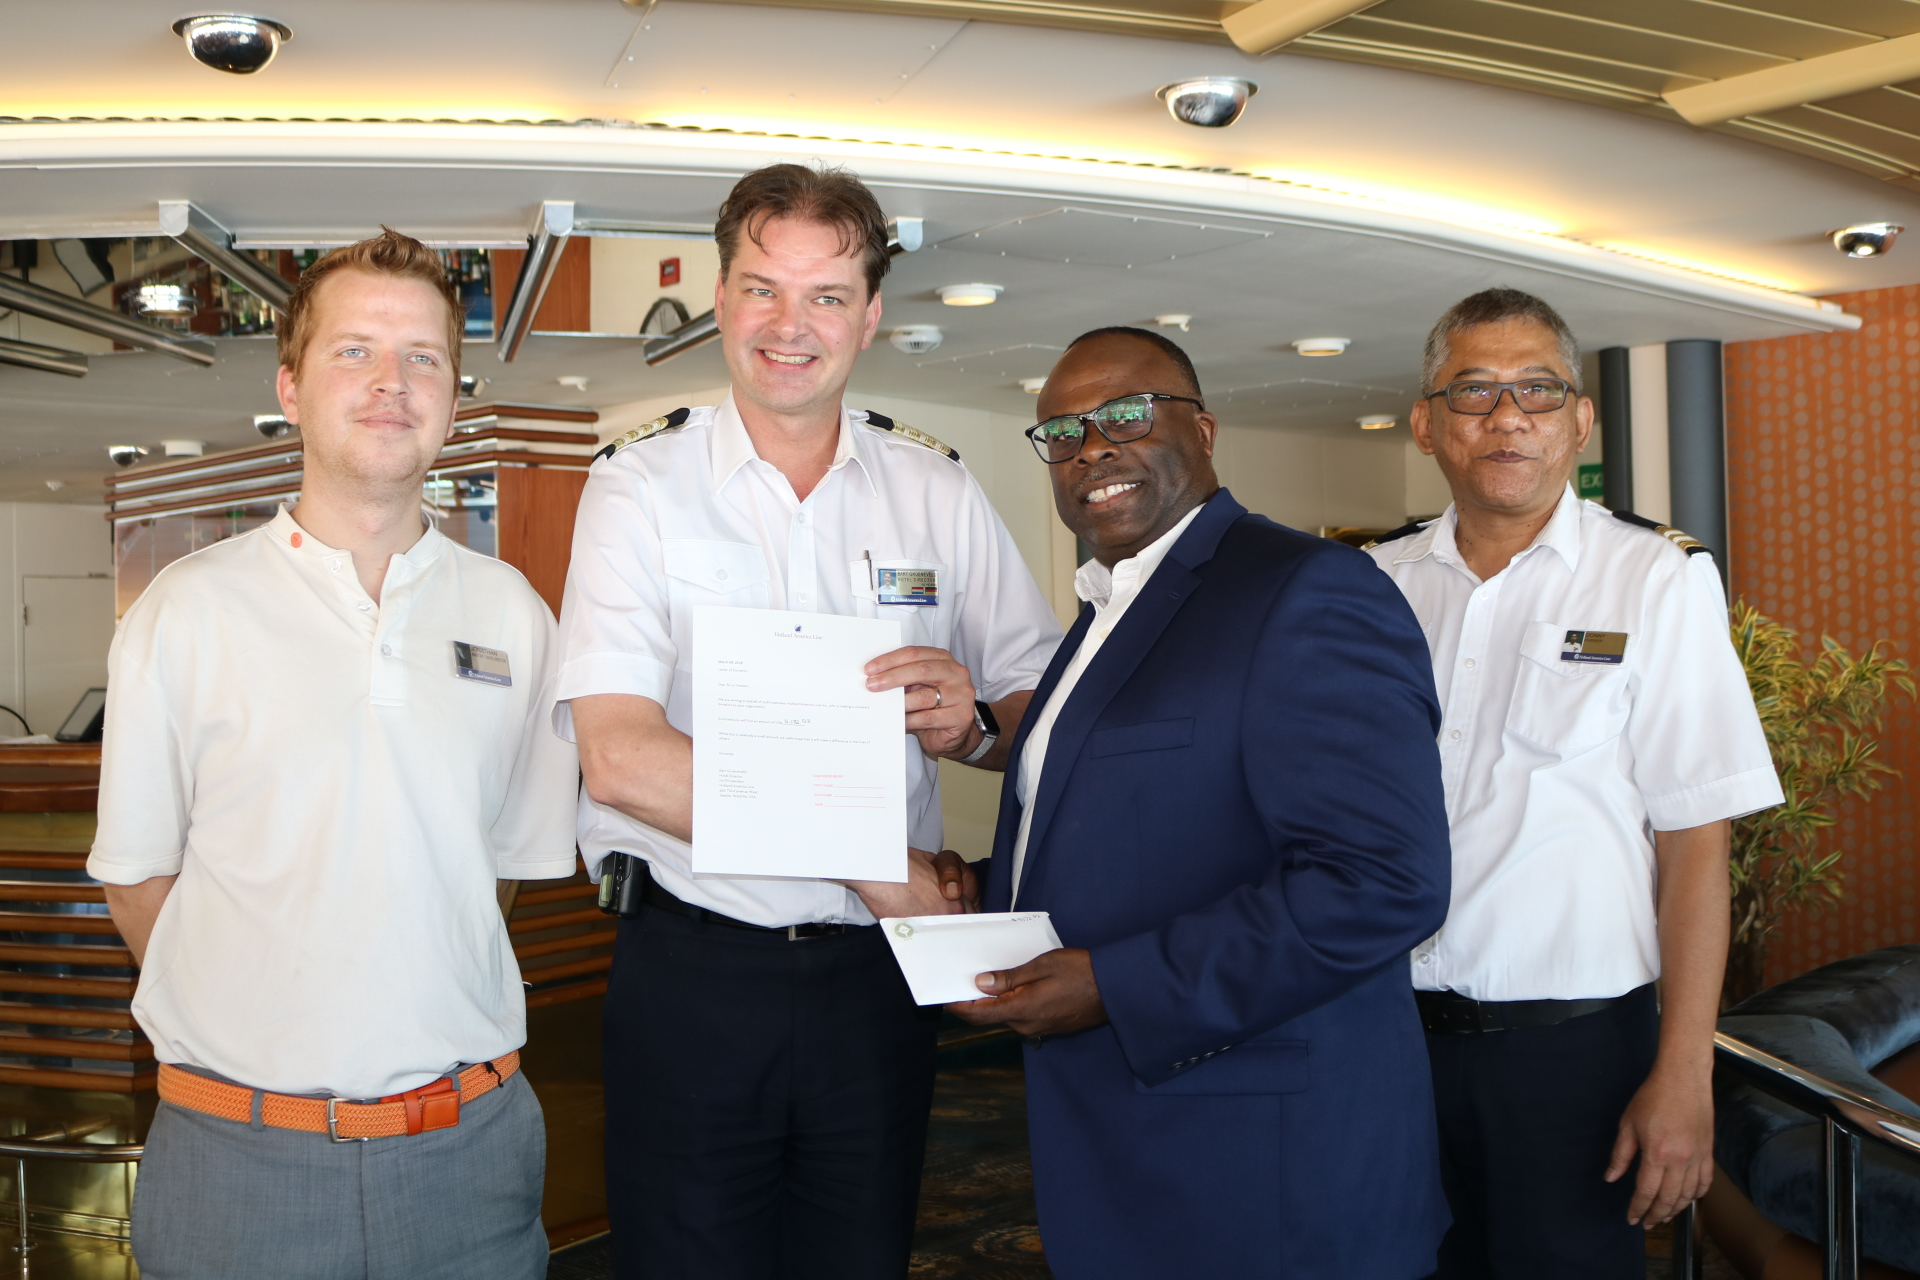 Asst. Cruise Director Jonathan, Hotel Director Bart, Edu. Dir. of Development Steve Walters and Cruise Purser Donny.jpeg